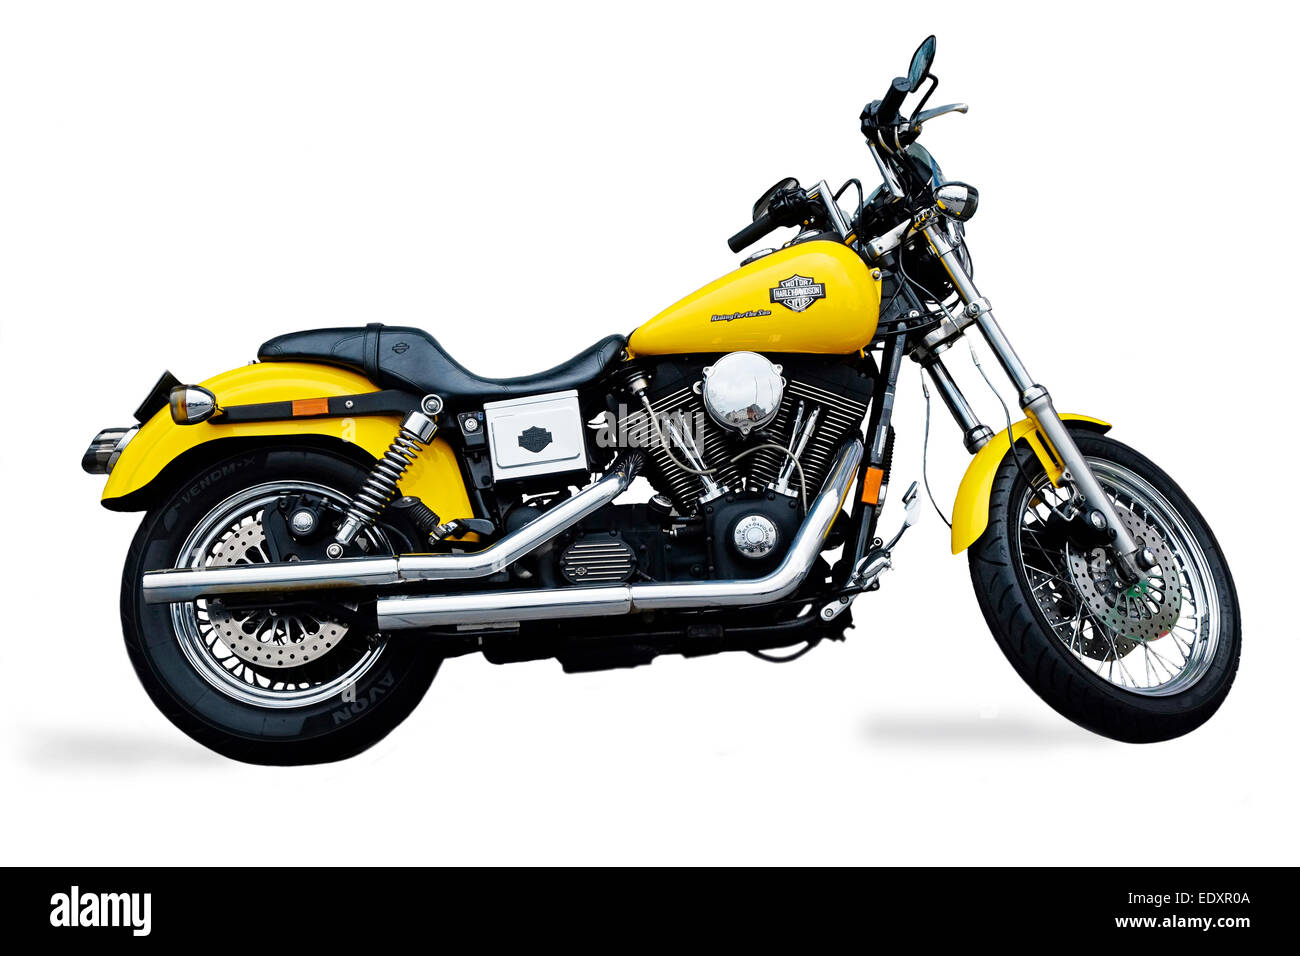 Harley Davidson Cruiser Motorcycle Cut out Yellow and chrome, Dublin - Stock Image